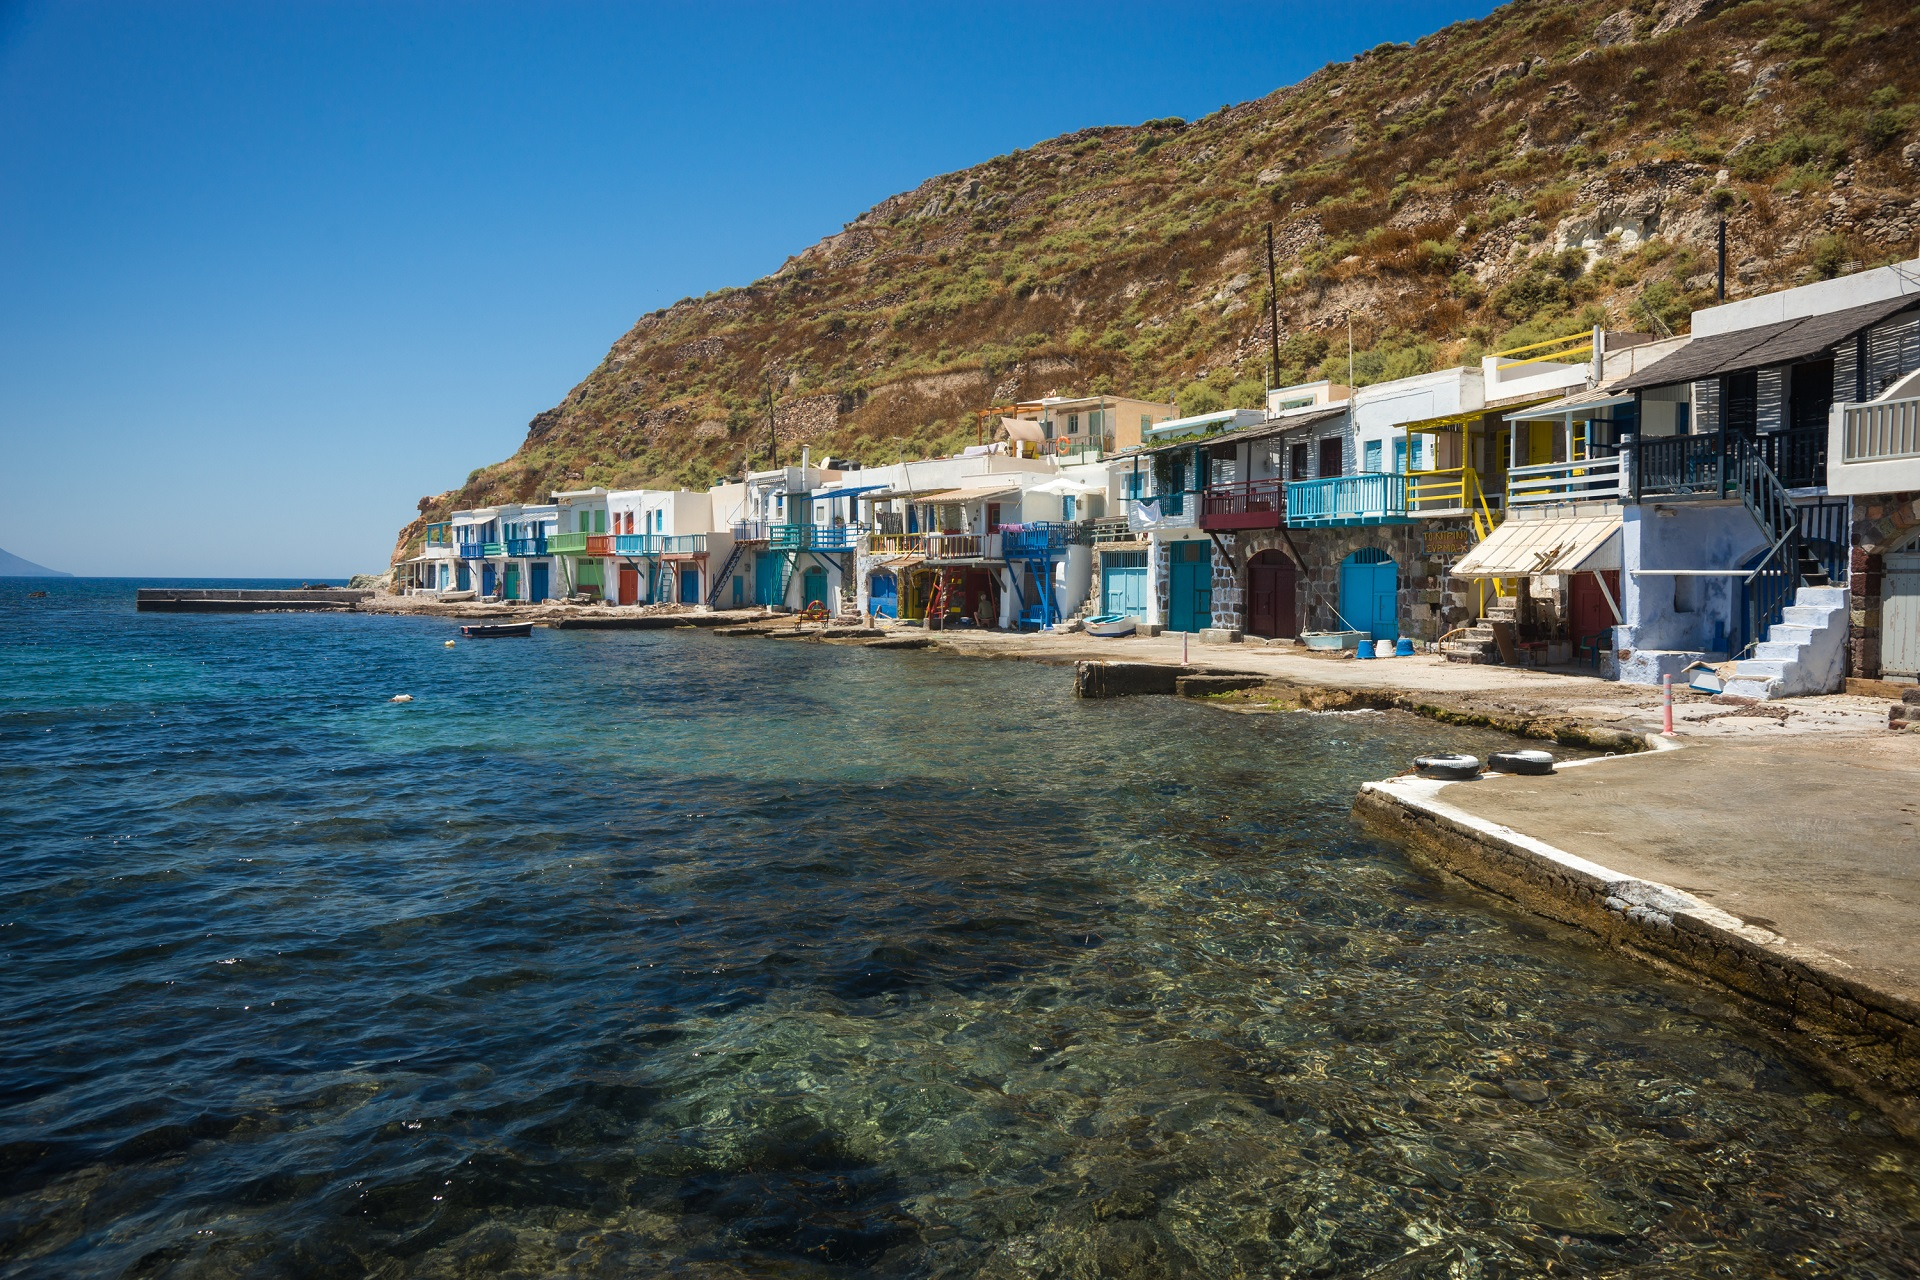 Picturesque fishing village of Klima on the island of Milos, Greece